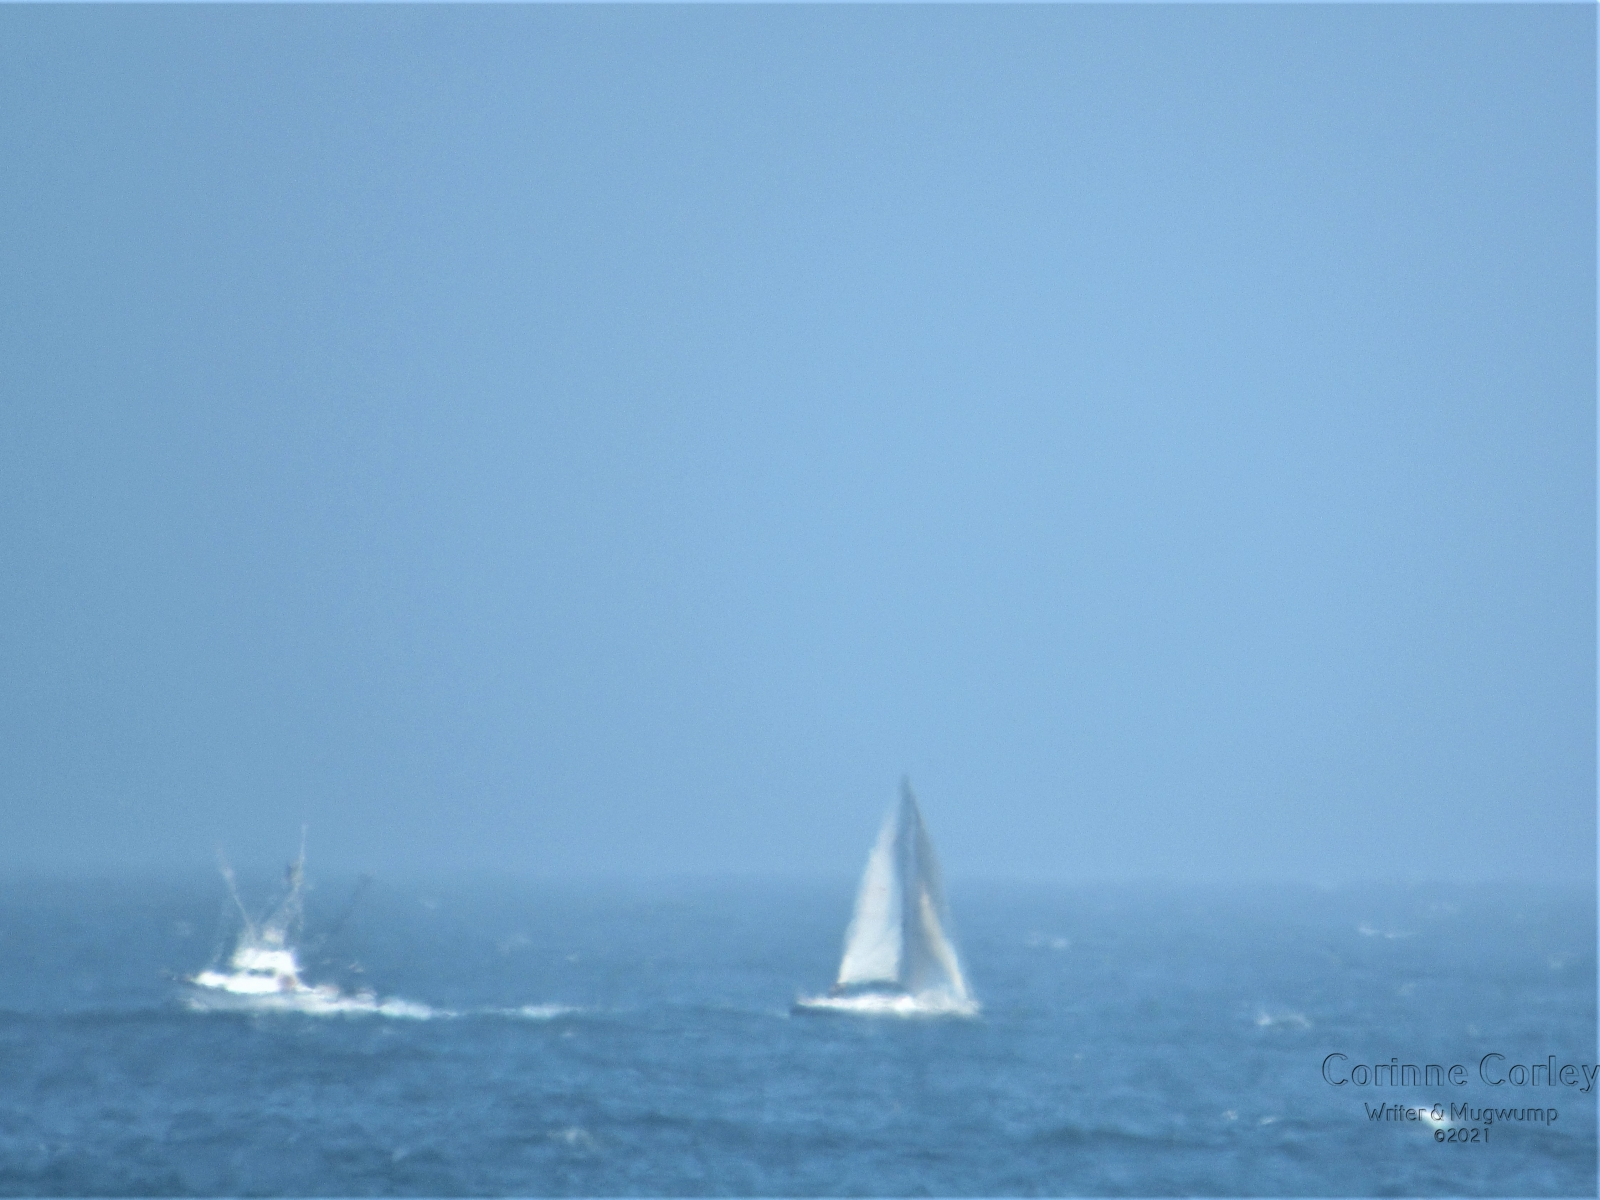 Boats-in-the-distance